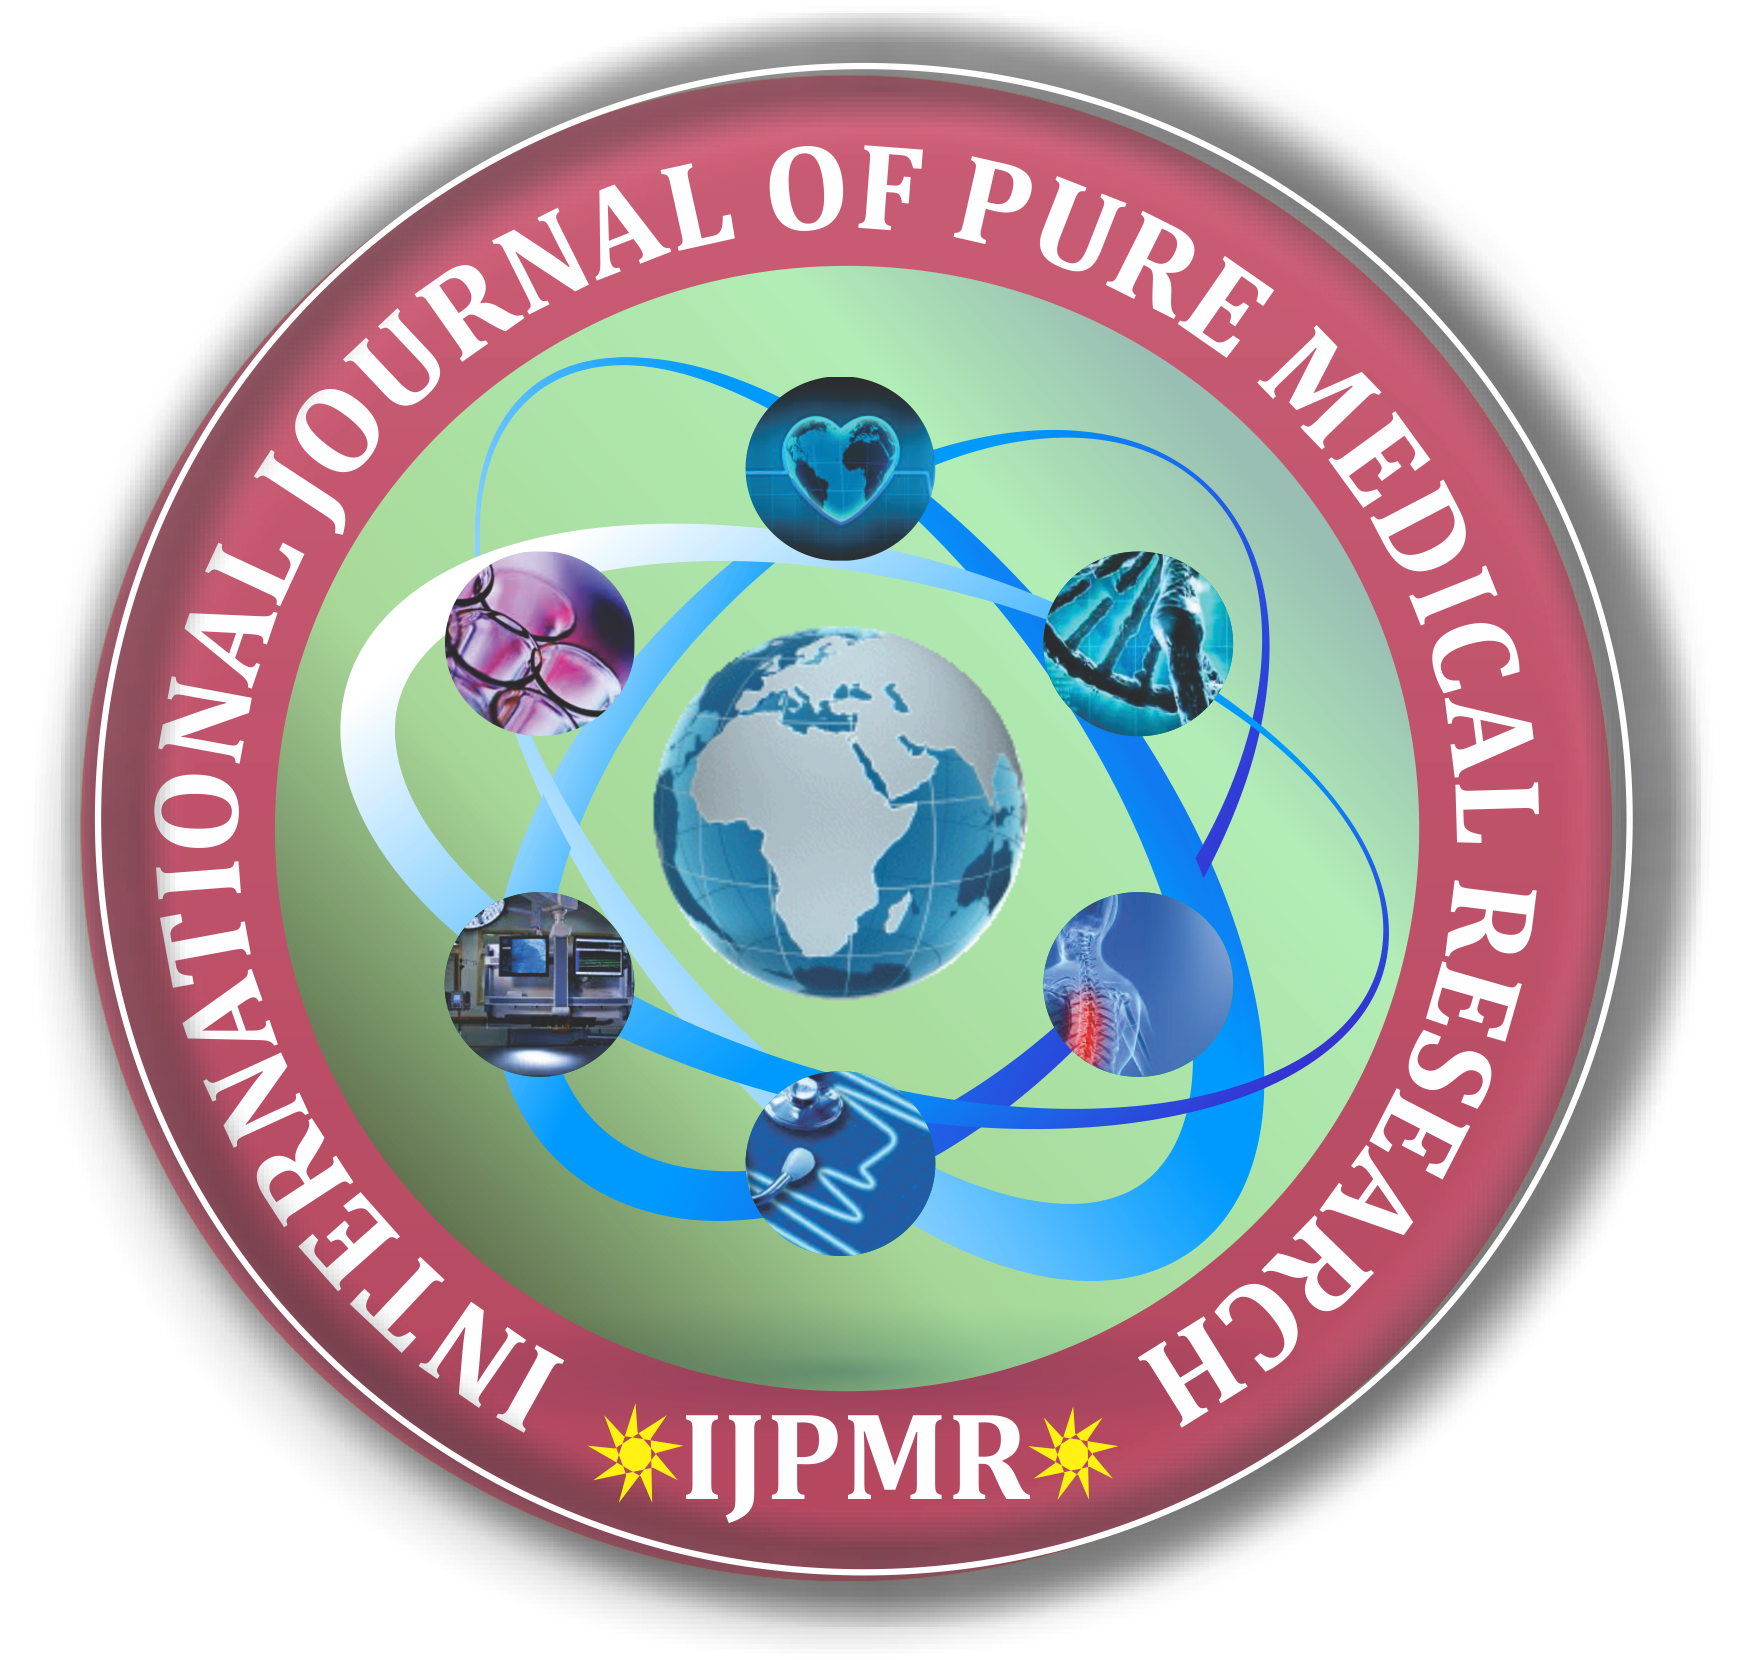 IJOPMR - International Journal Of Pure Medical Research